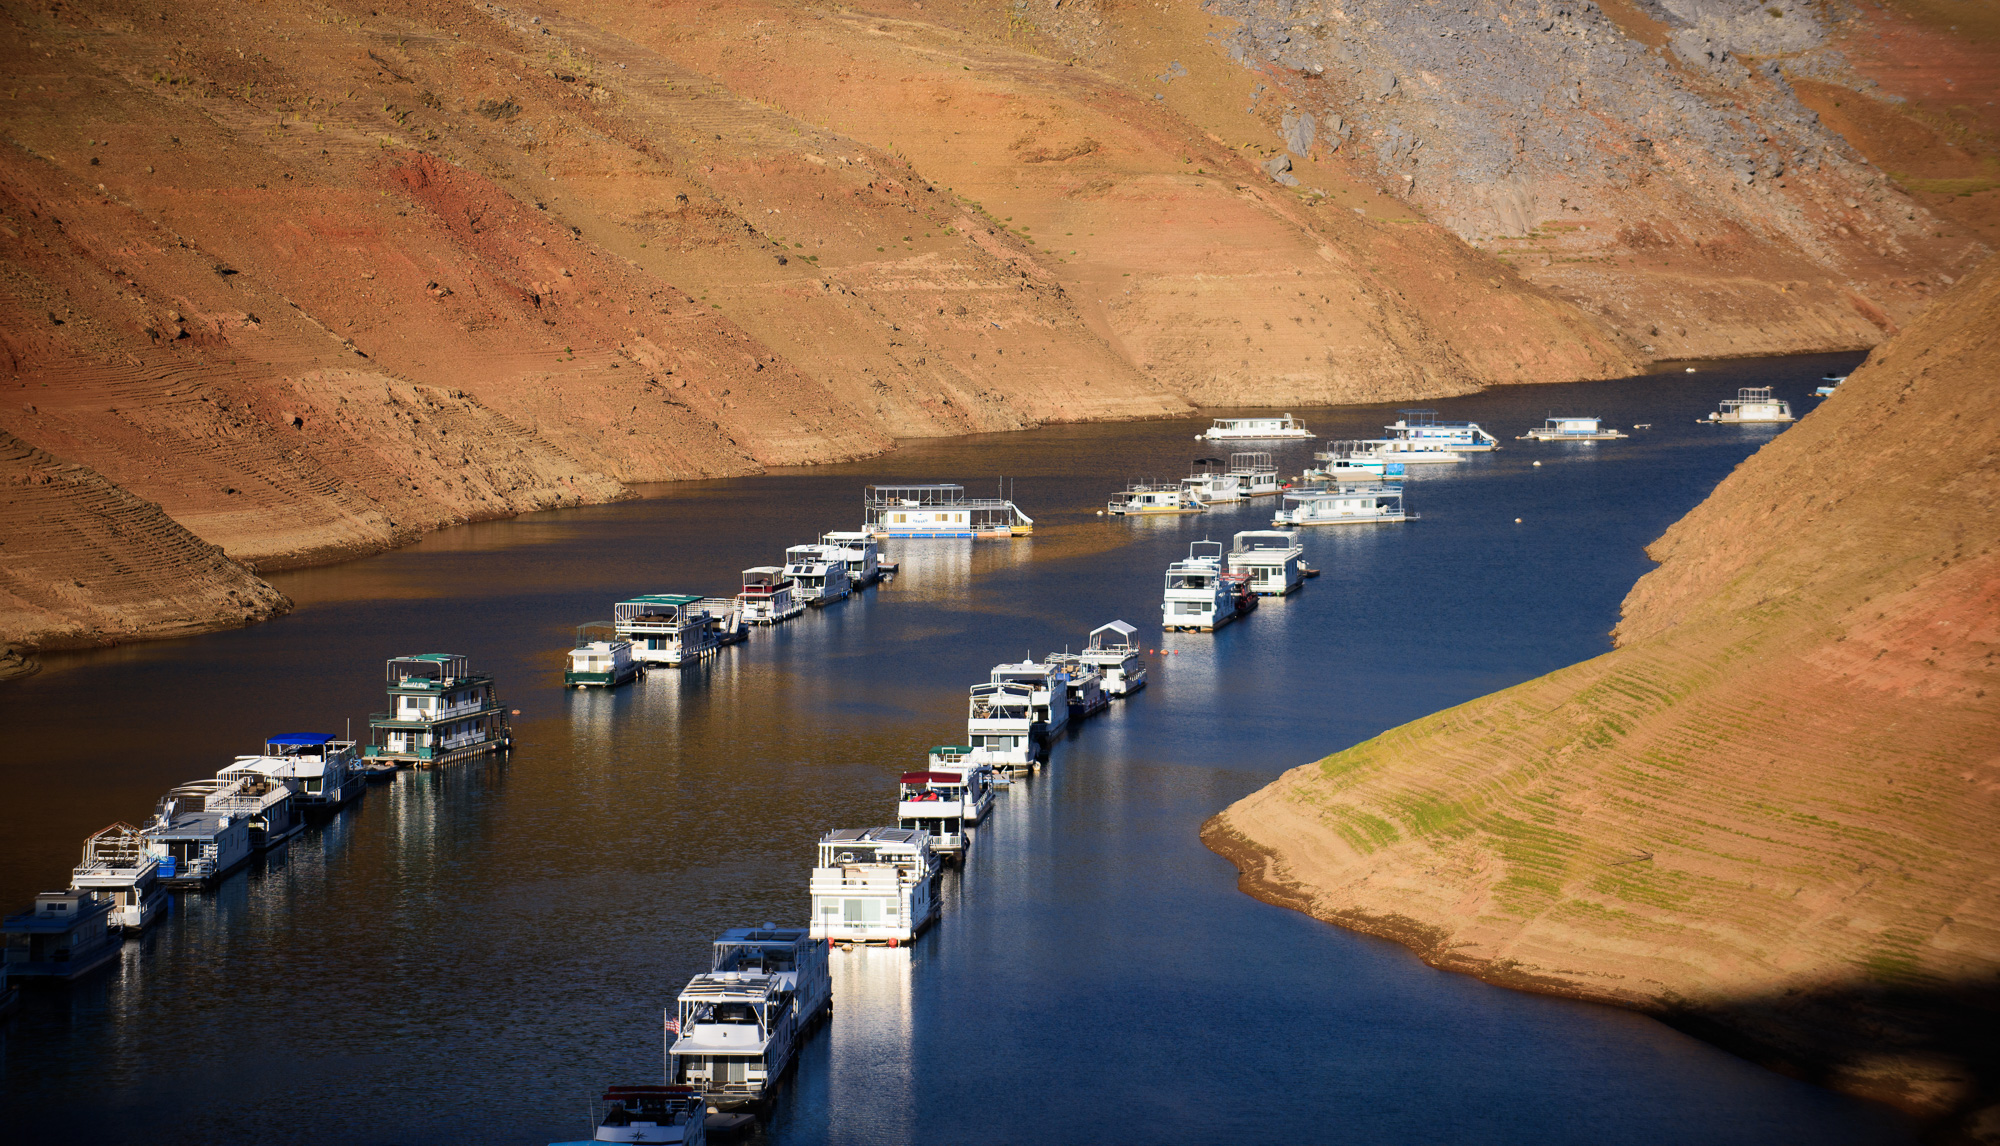 lake_oroville_boats_low_water_brittany_app.jpg